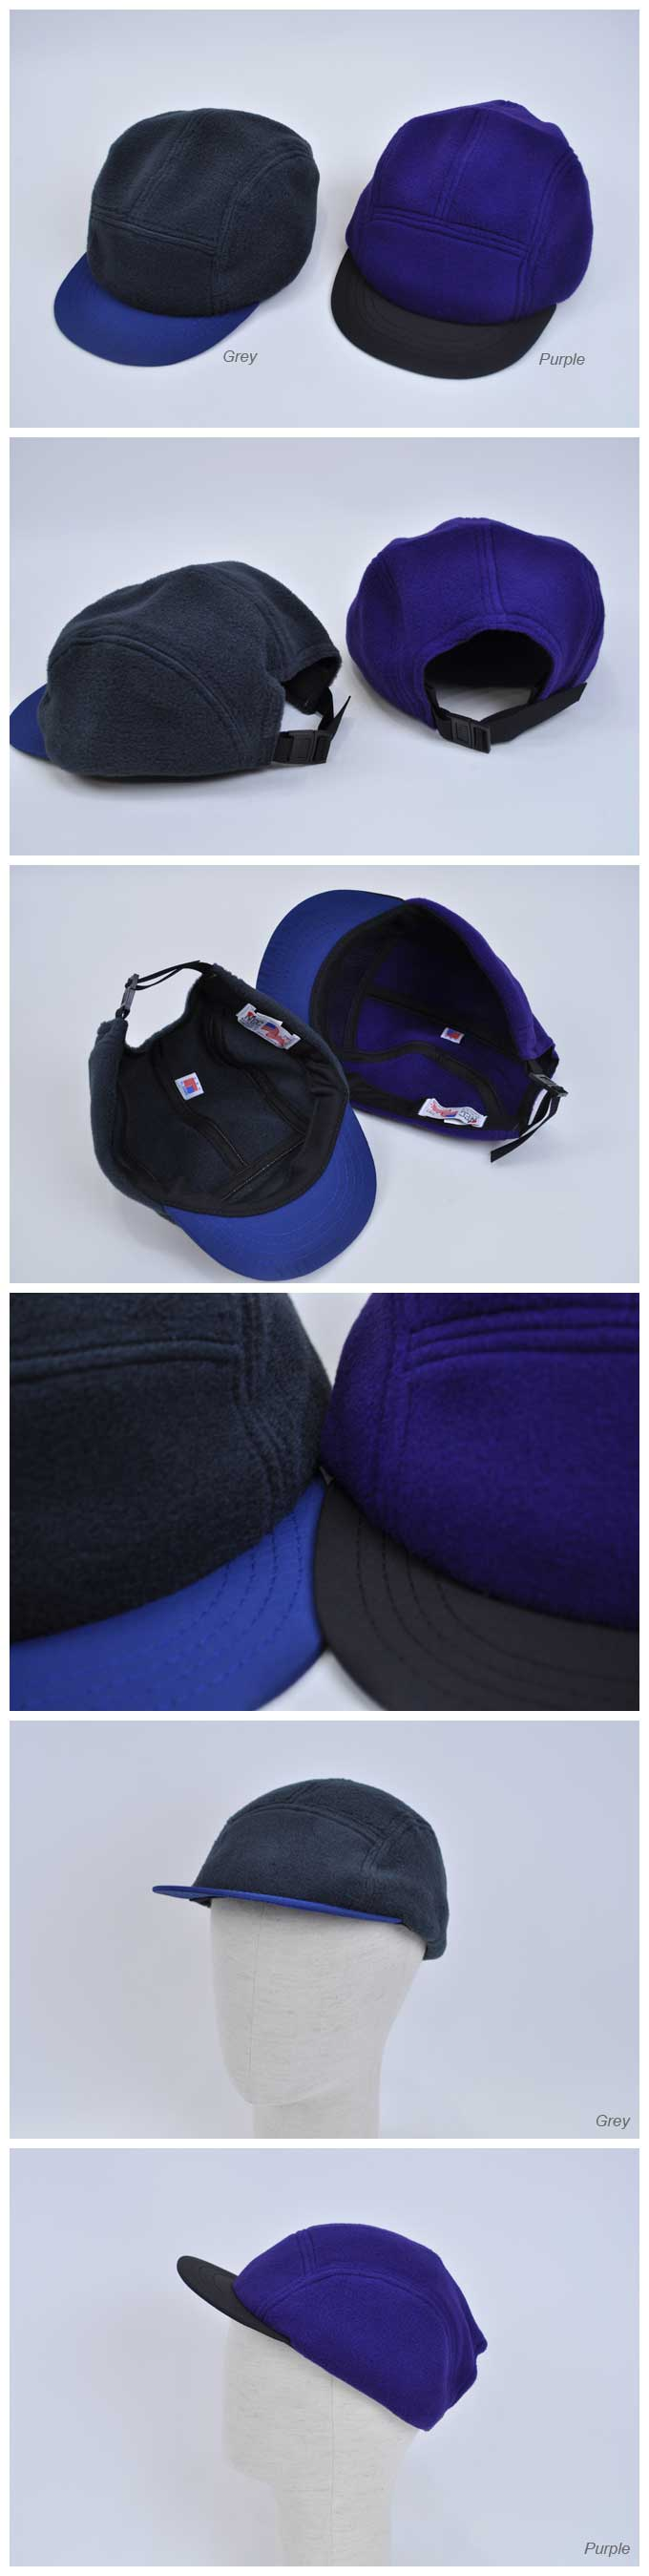 NEW ENGLAND CAP Polartec Fleece/Nylon High Crown Cap